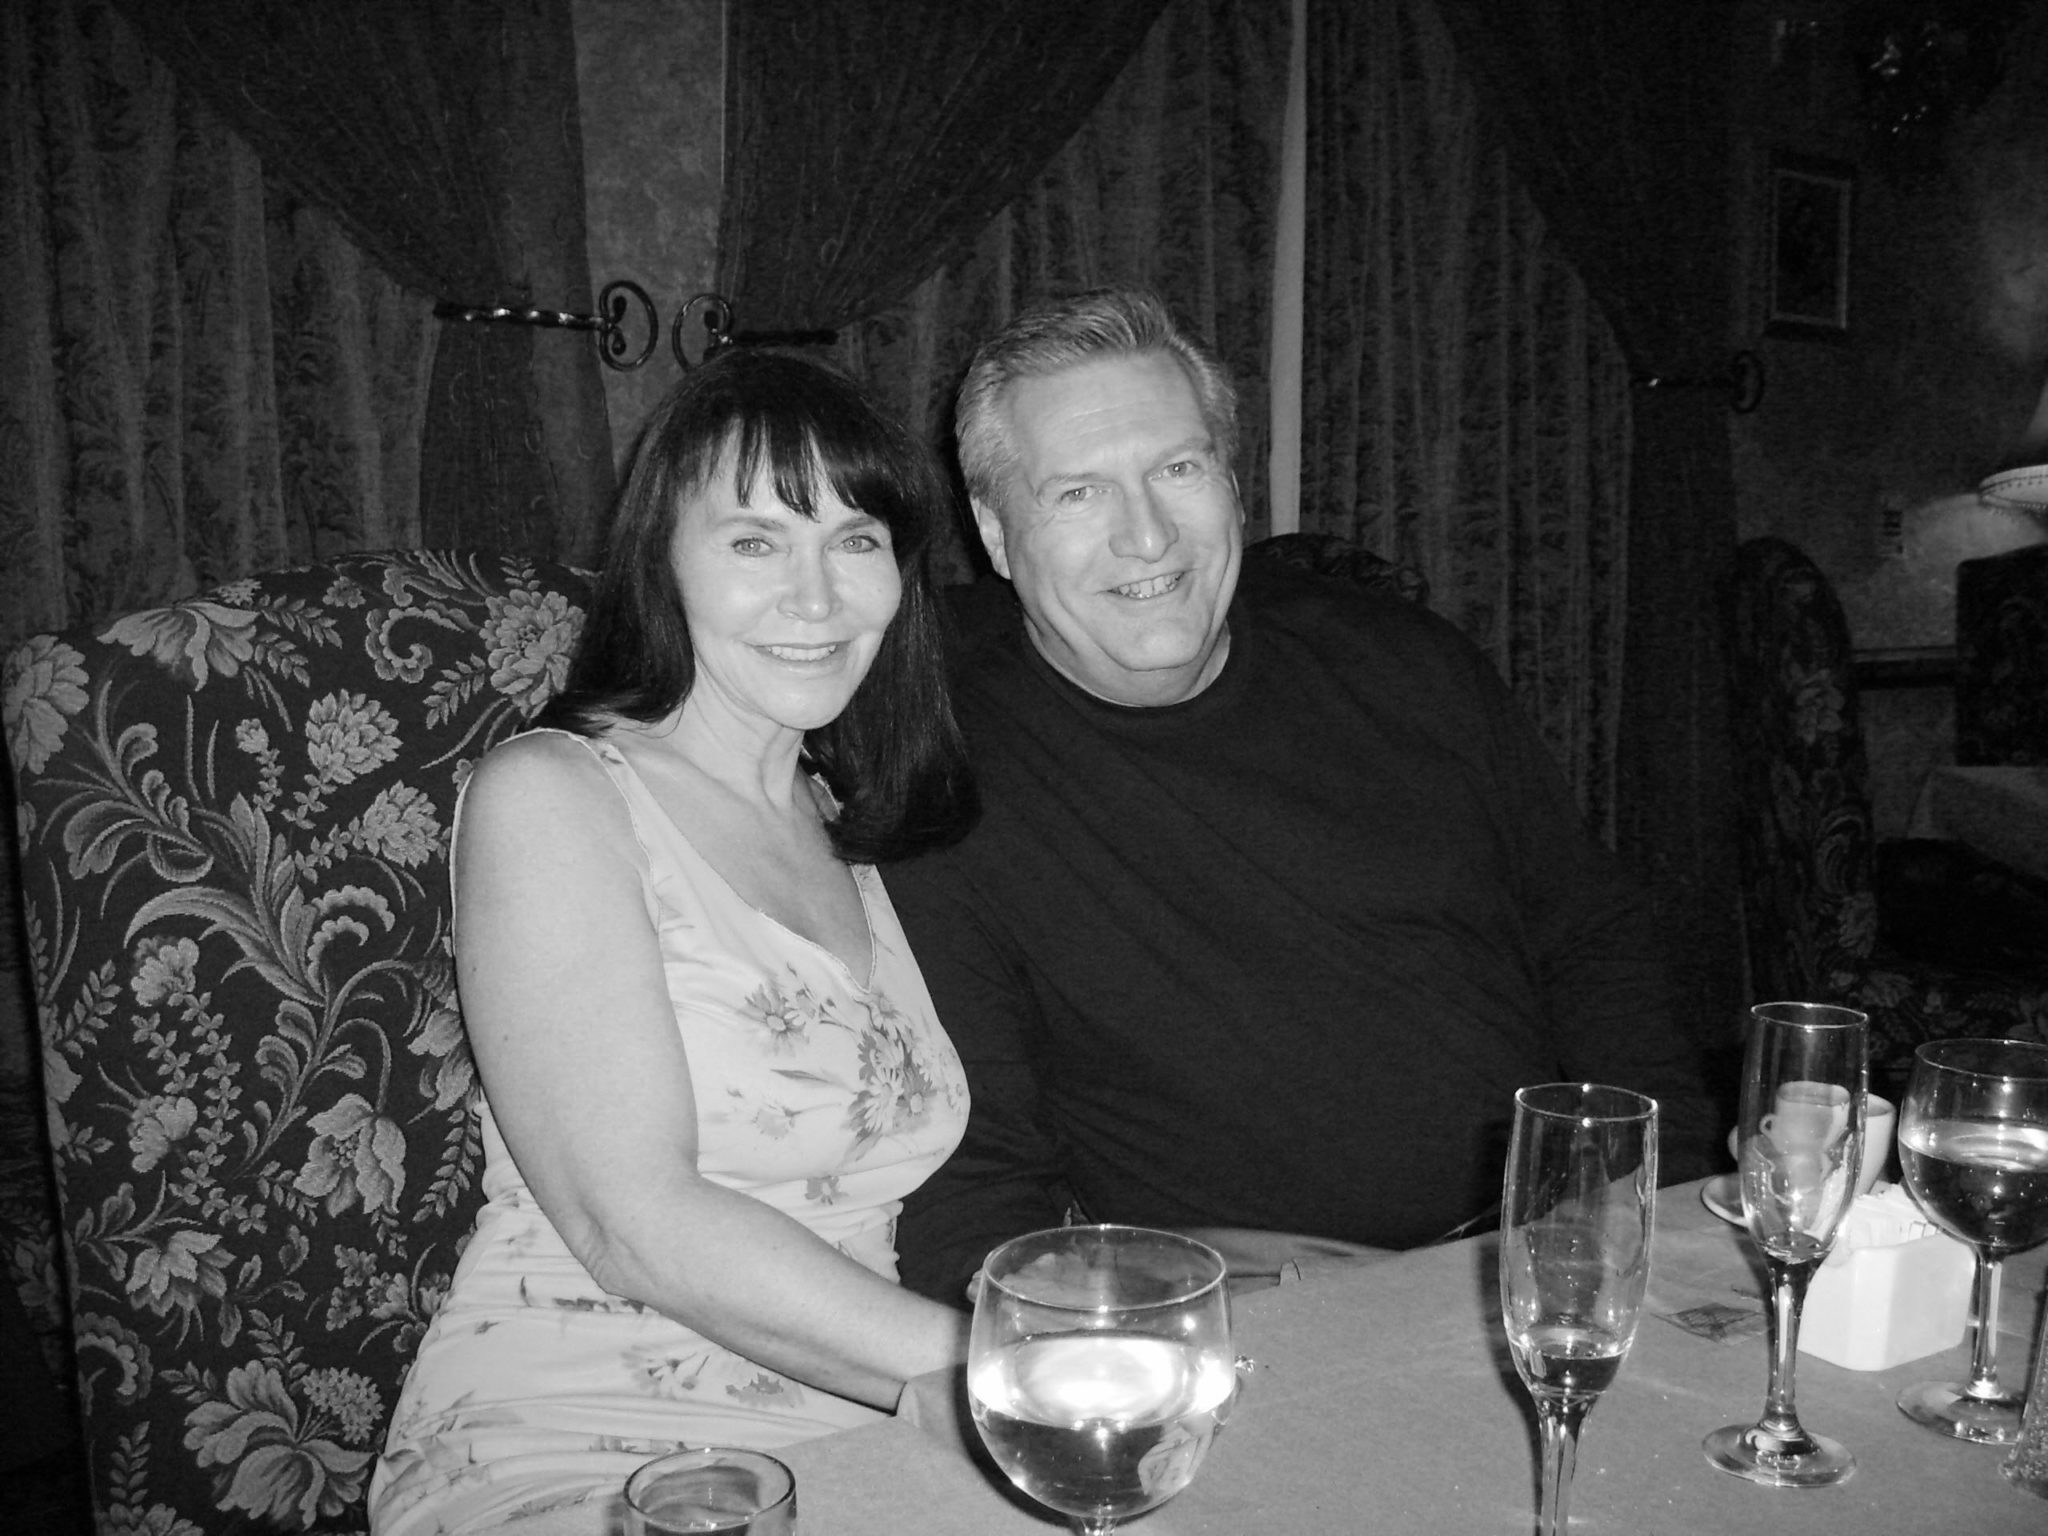 Ray & Linda at dinner